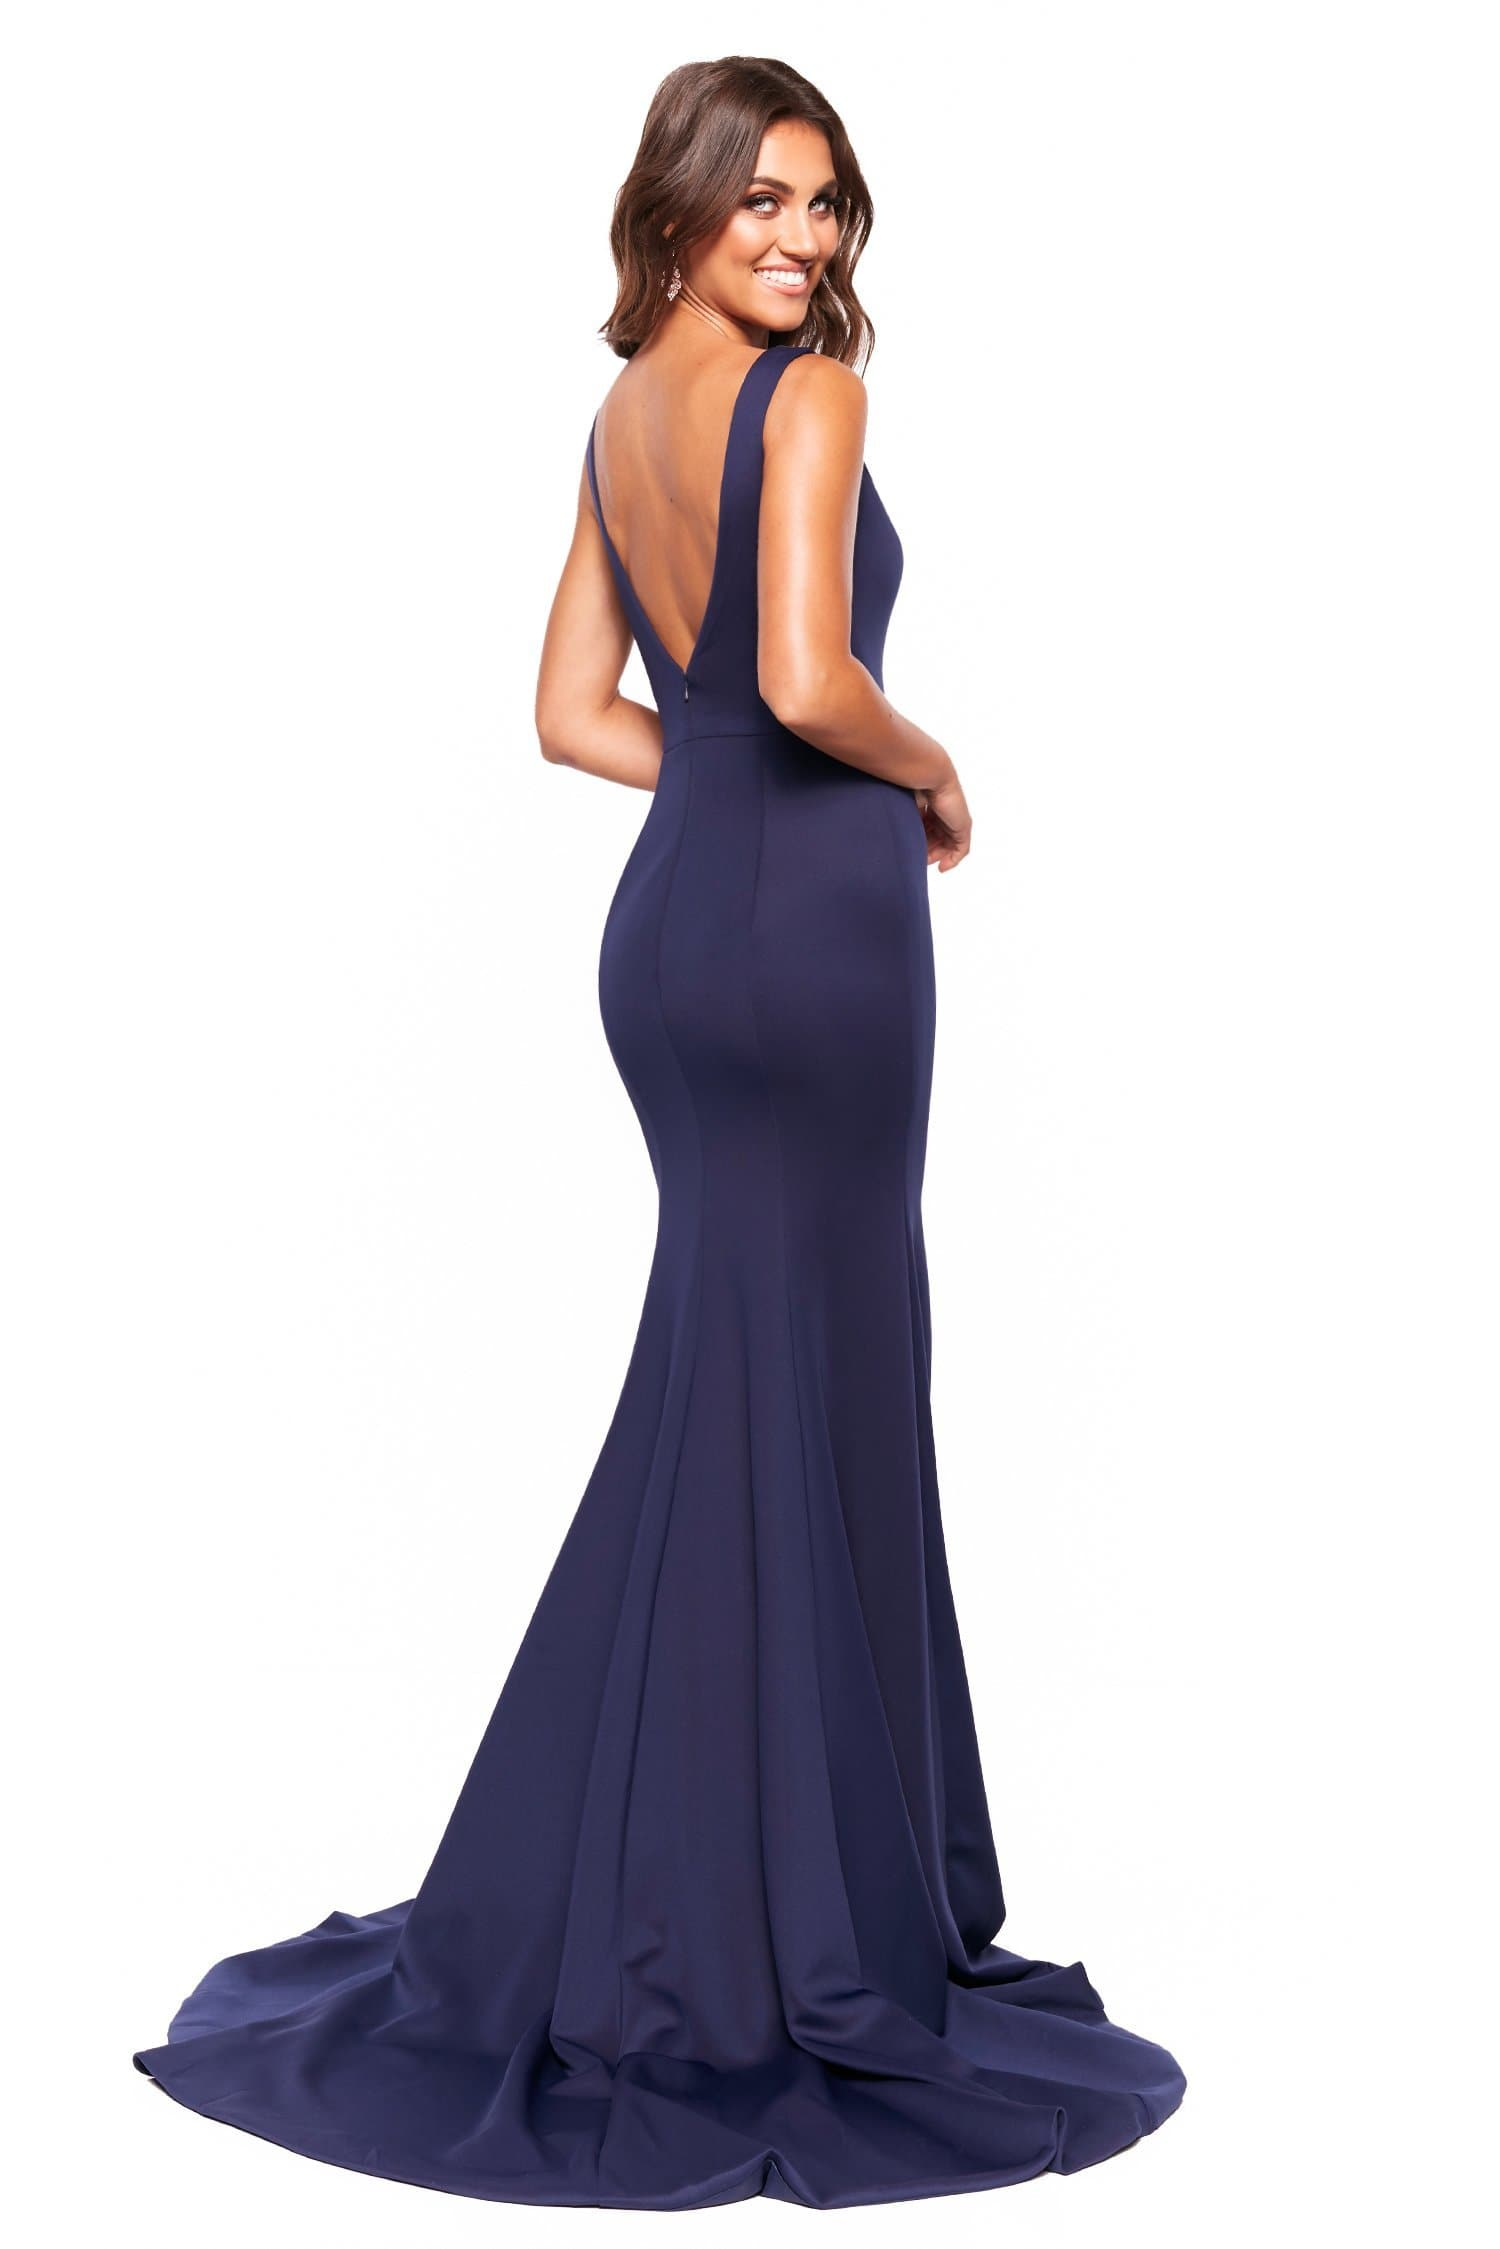 A&N Luxe Makayla - Navy V-Neck Open Back Mermaid Gown